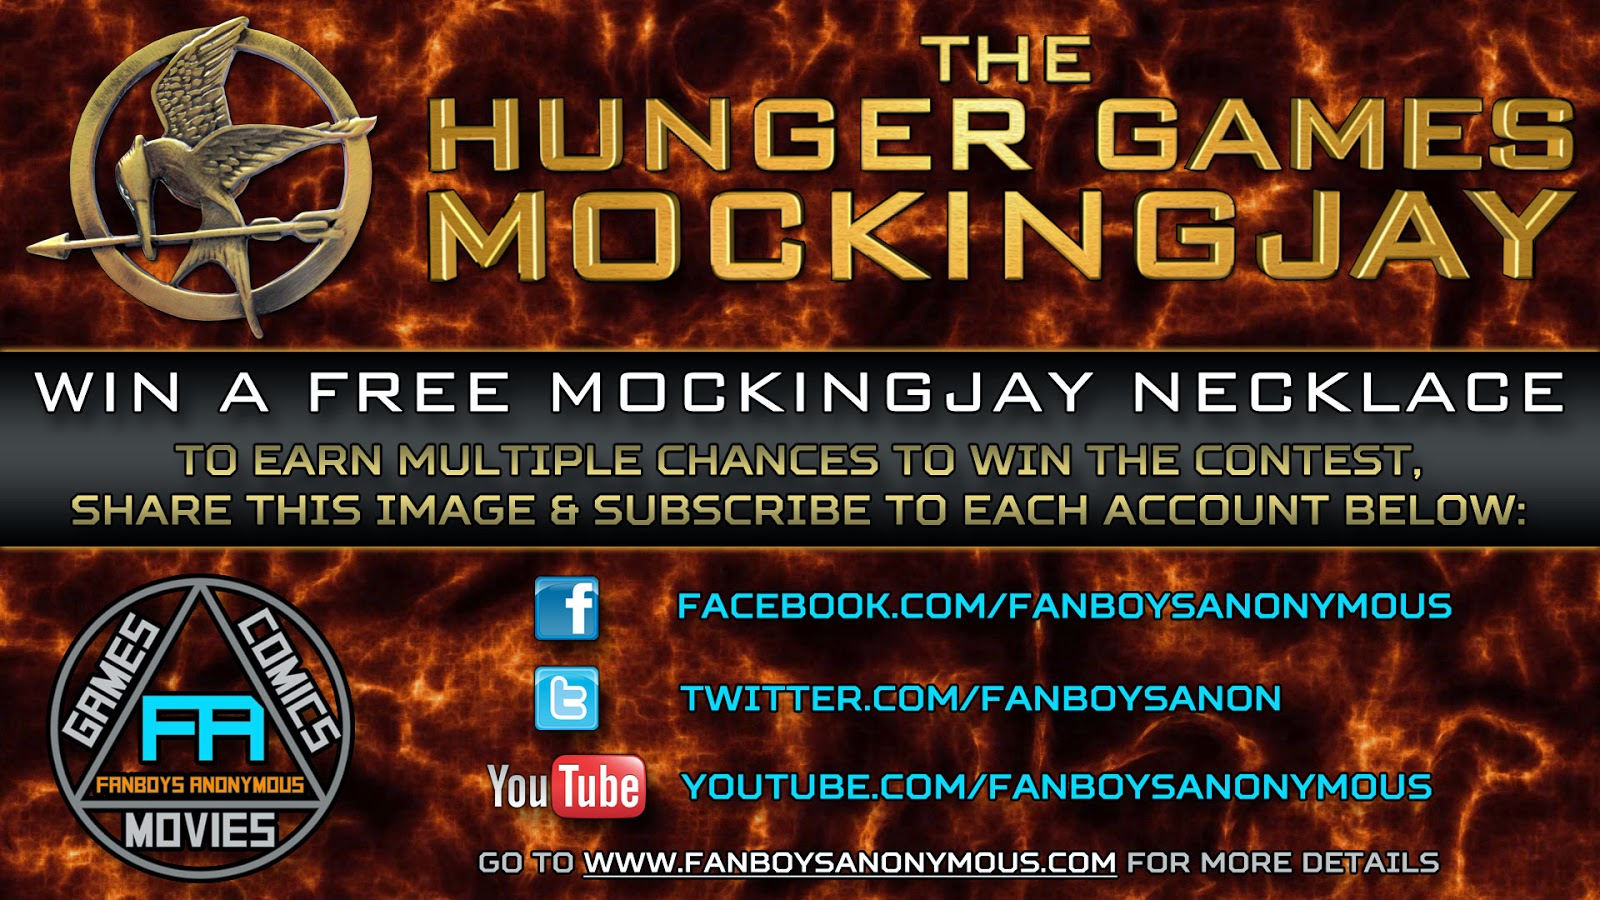 win a free Hunger Games Mockingjay necklace by subscribing to Fanboys Anonymous